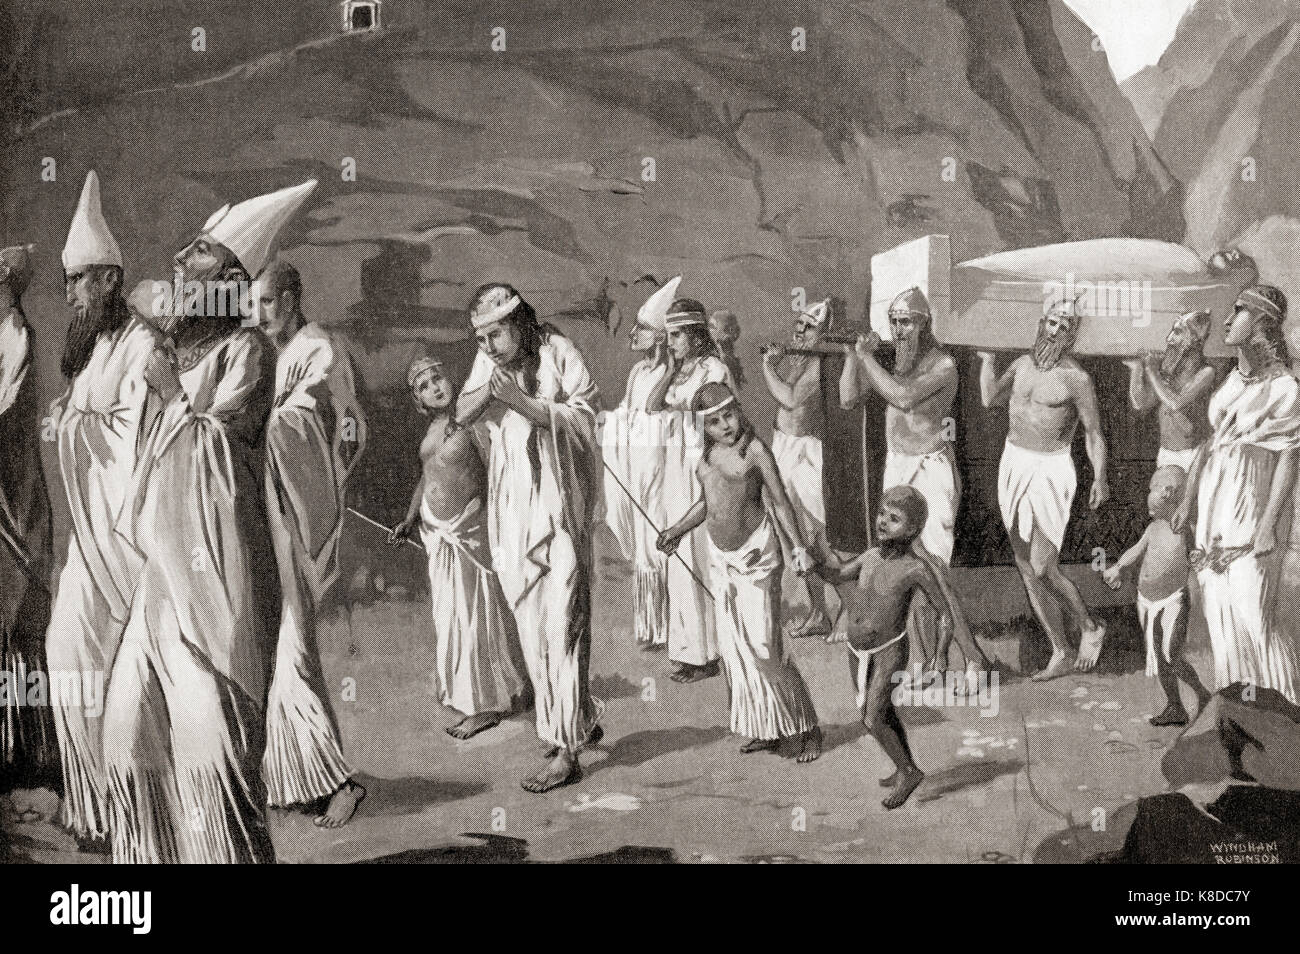 A Phoenician funeral procession. From Hutchinson's History of the Nations, published 1915. - Stock Image